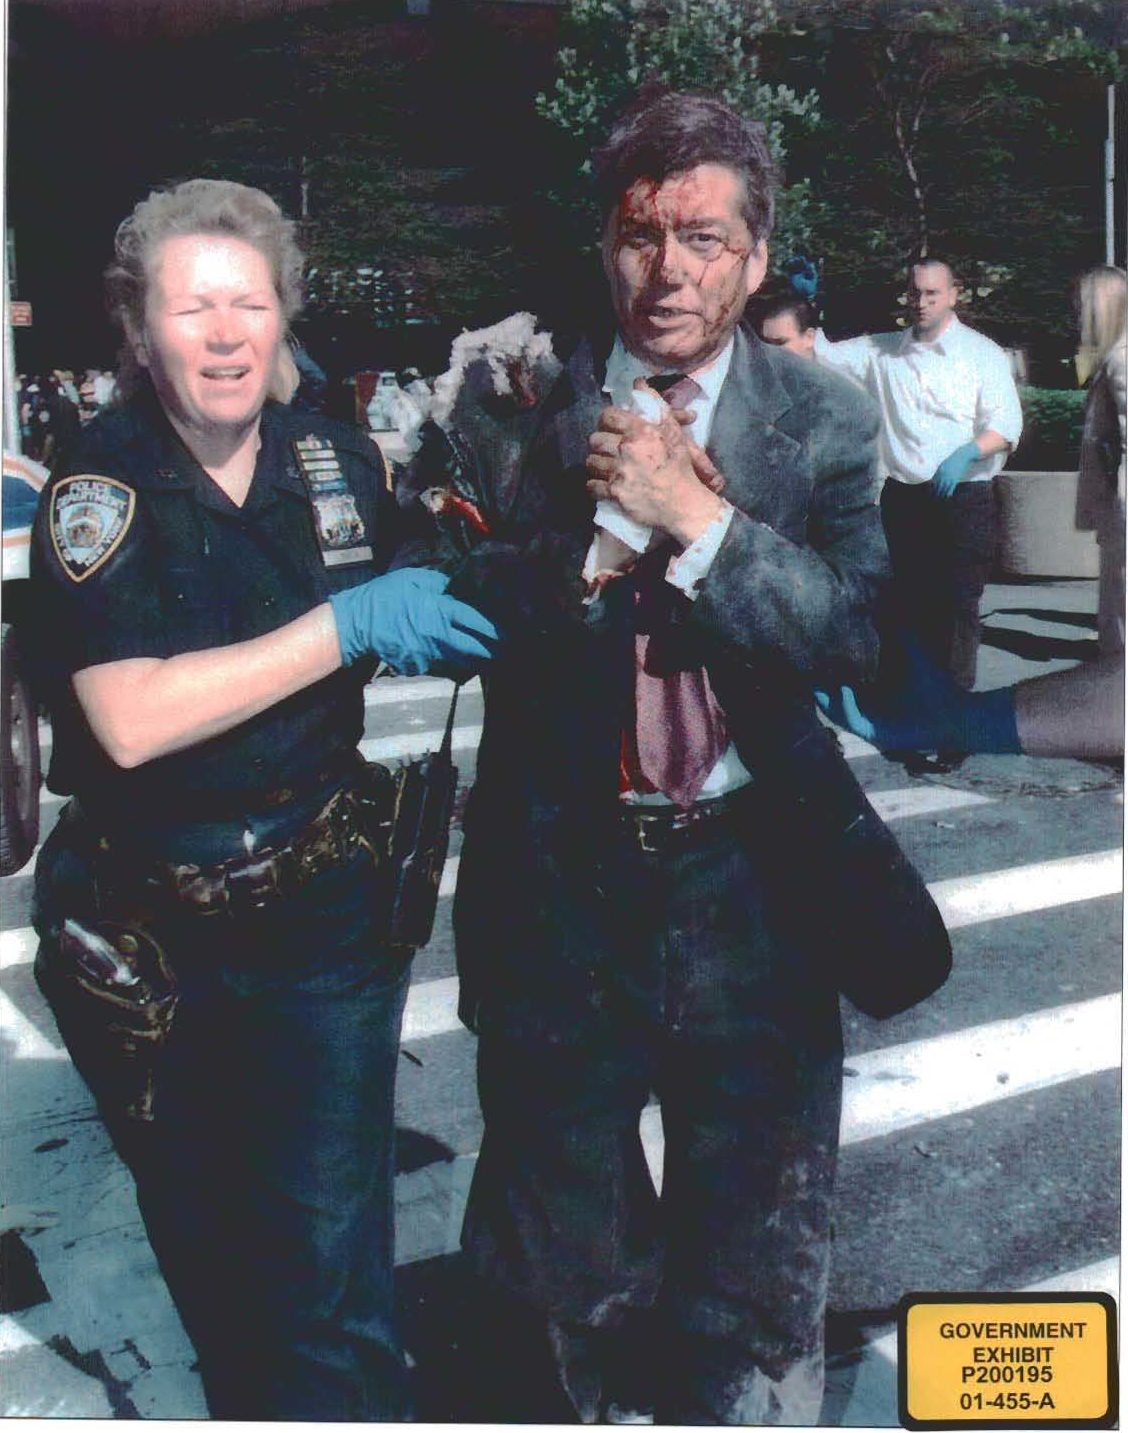 Remember 9/11: The Story Of NYPD Officer Moira Smith